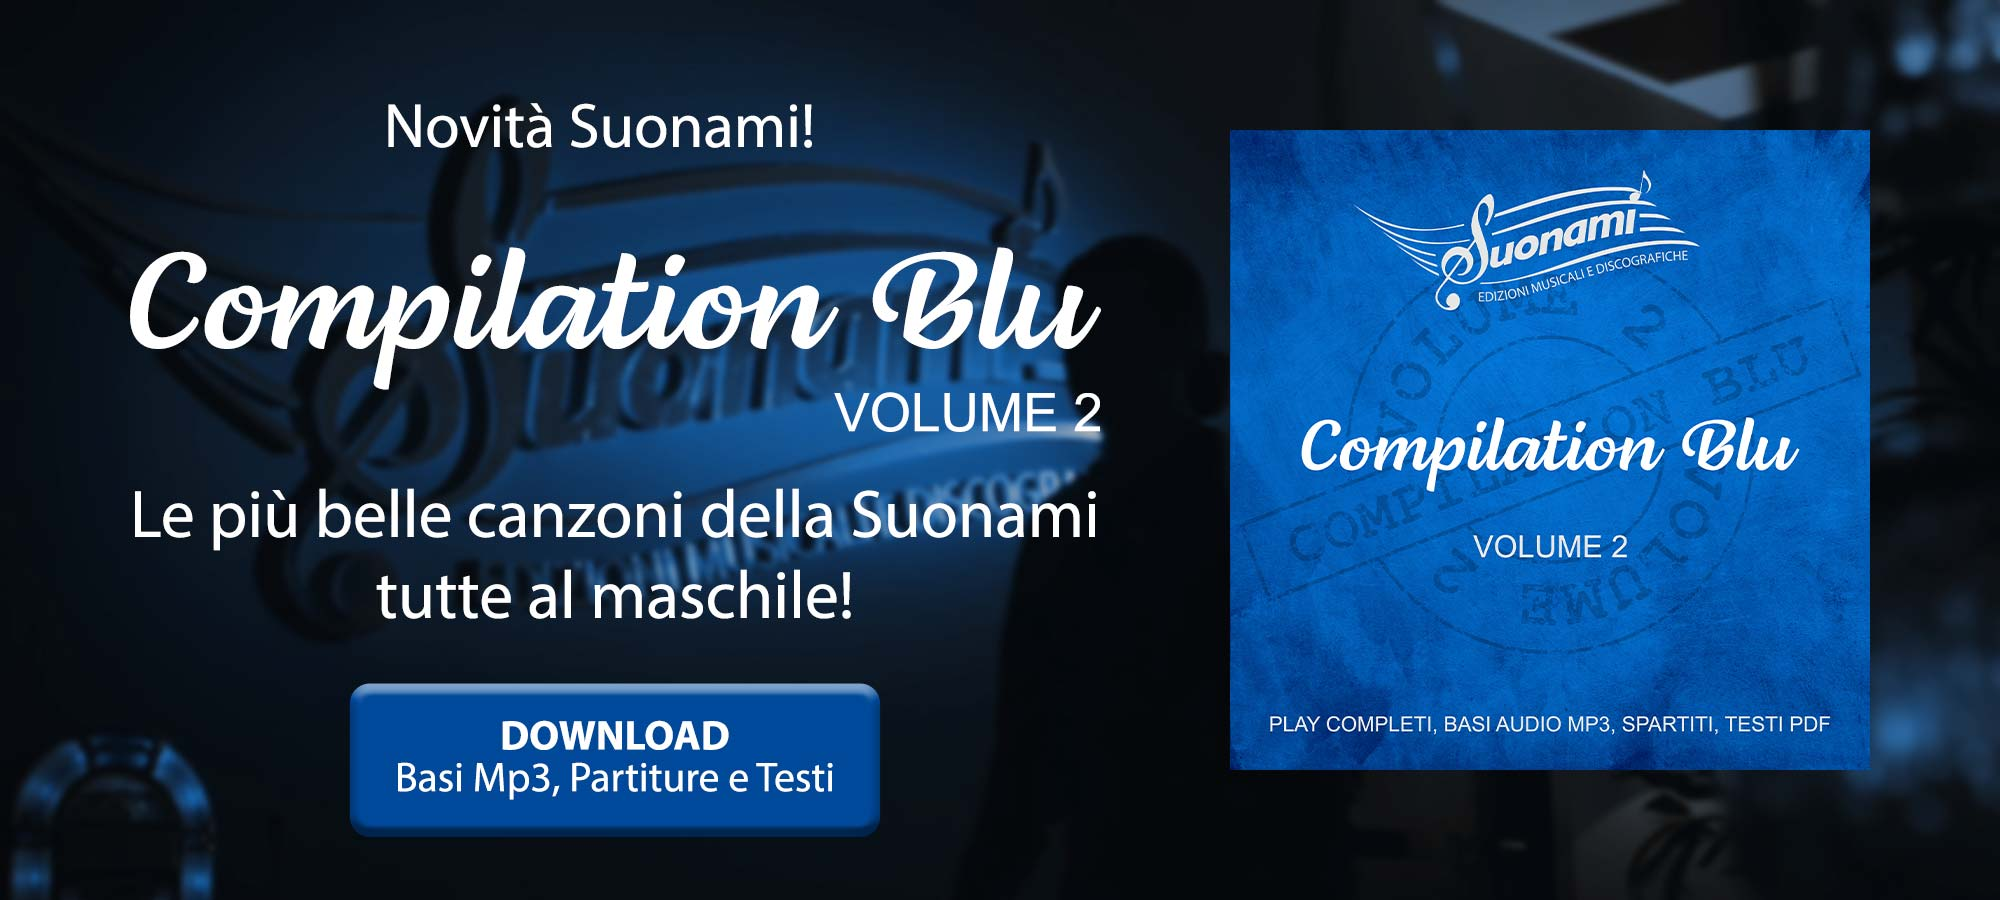 SUONAMI - Compilation Blu - Volume 2